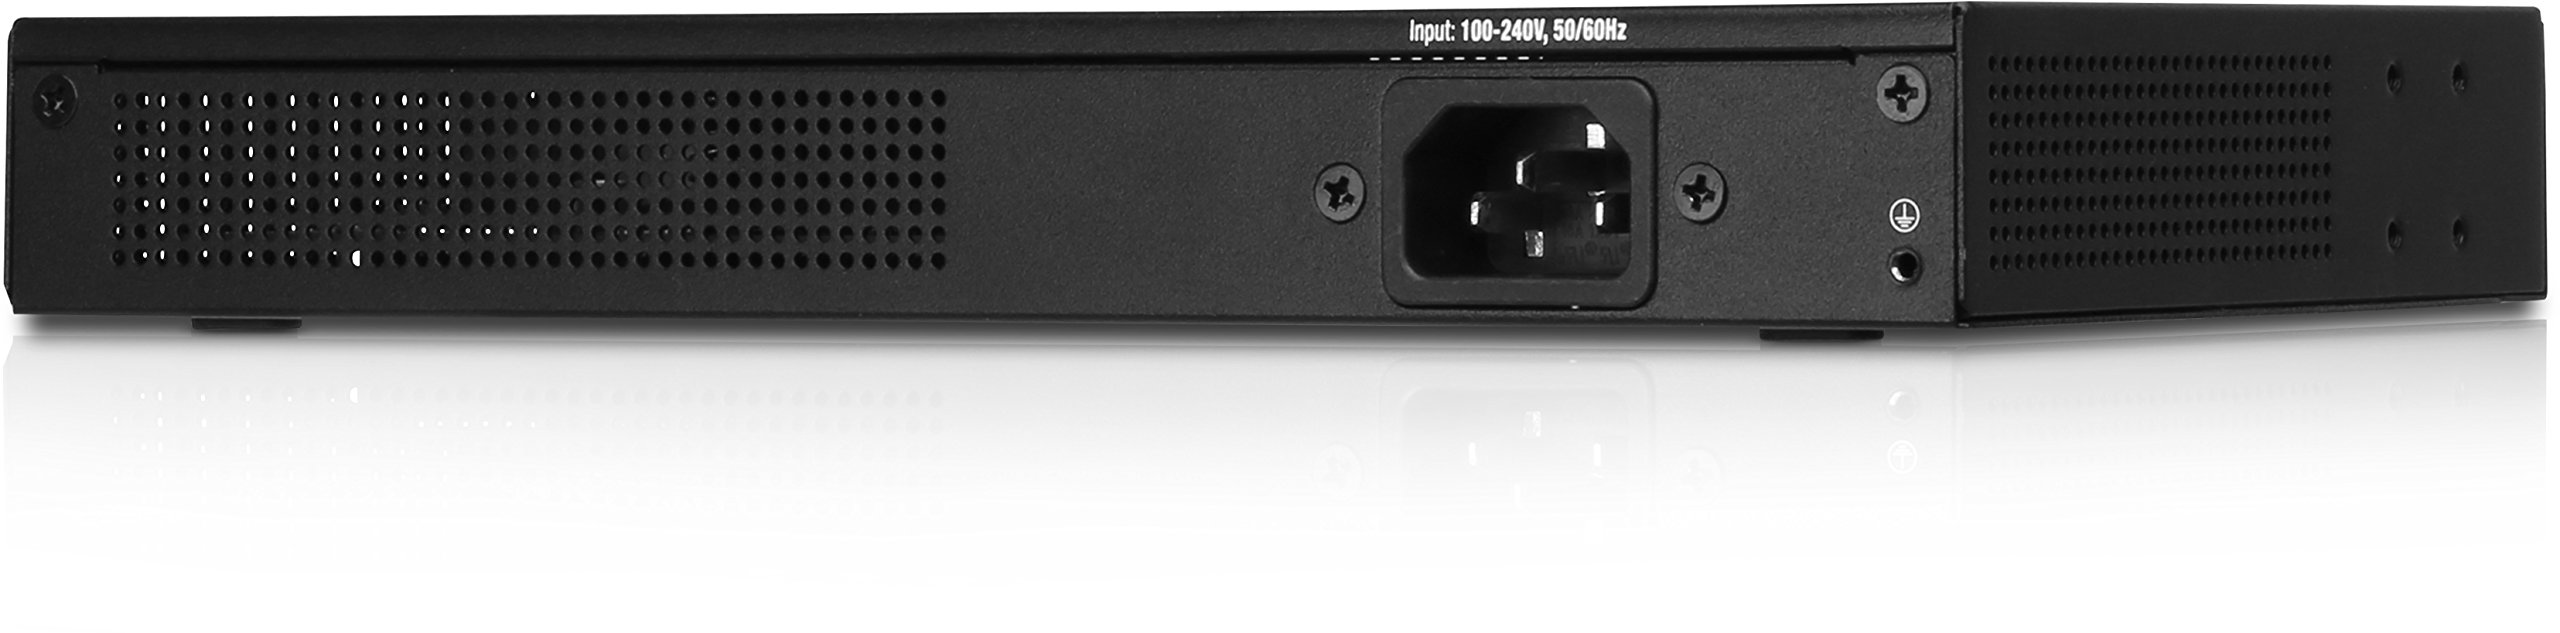 Ubiquiti EdgeRouter 4, 4-Port Gigabit Router with 1 SFP Port (ER-4-US) by Ubiquiti Networks (Image #2)